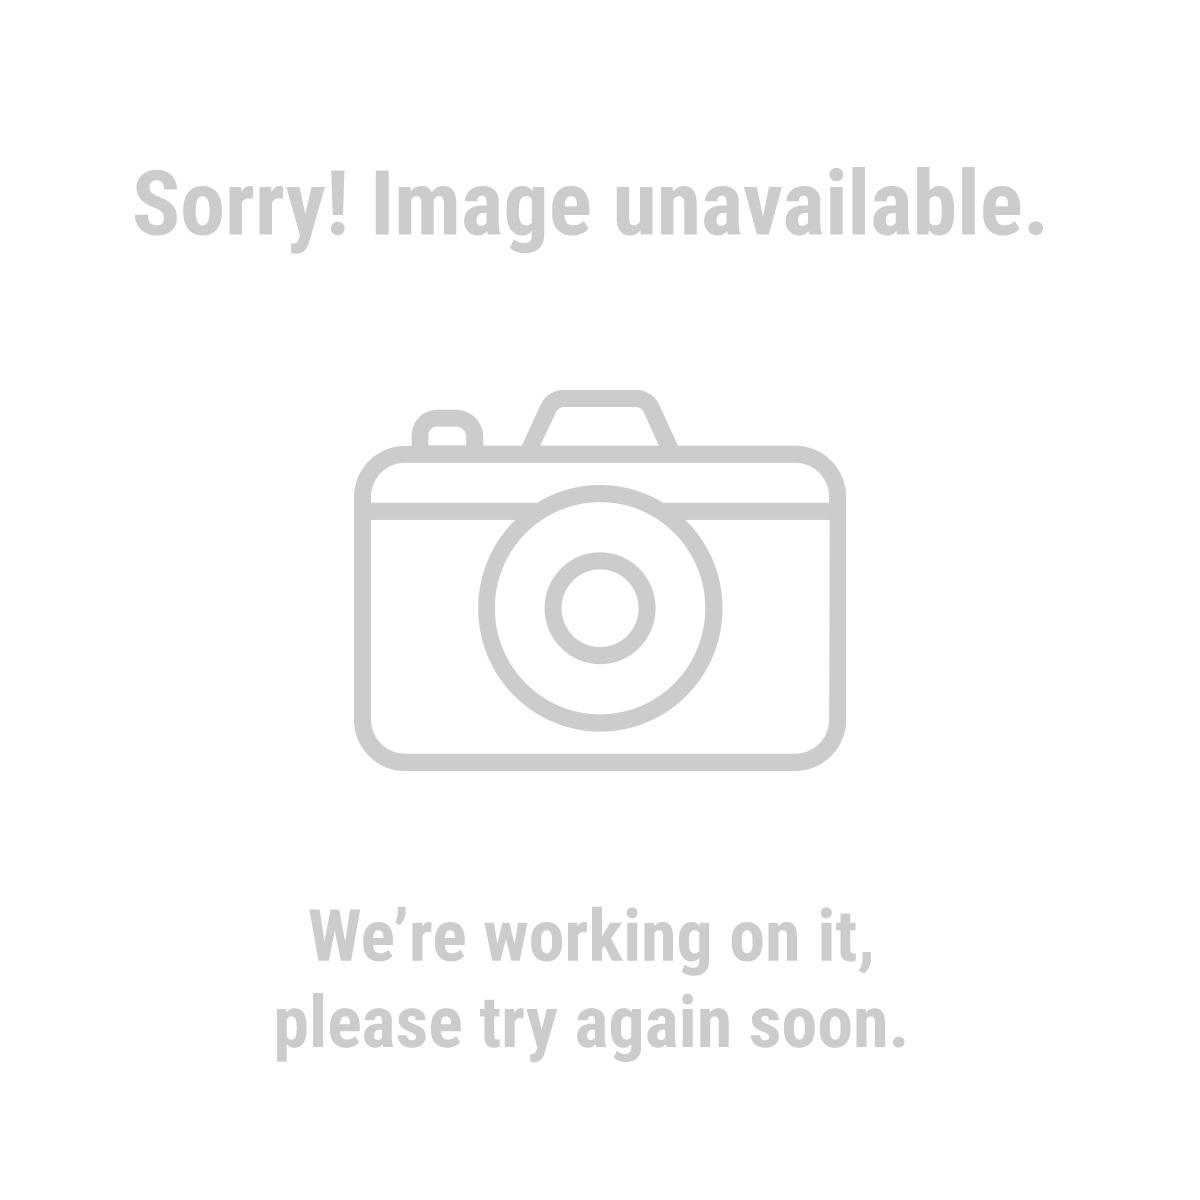 Ship to Shore 62442 2.5 Liter Ultrasonic Cleaner